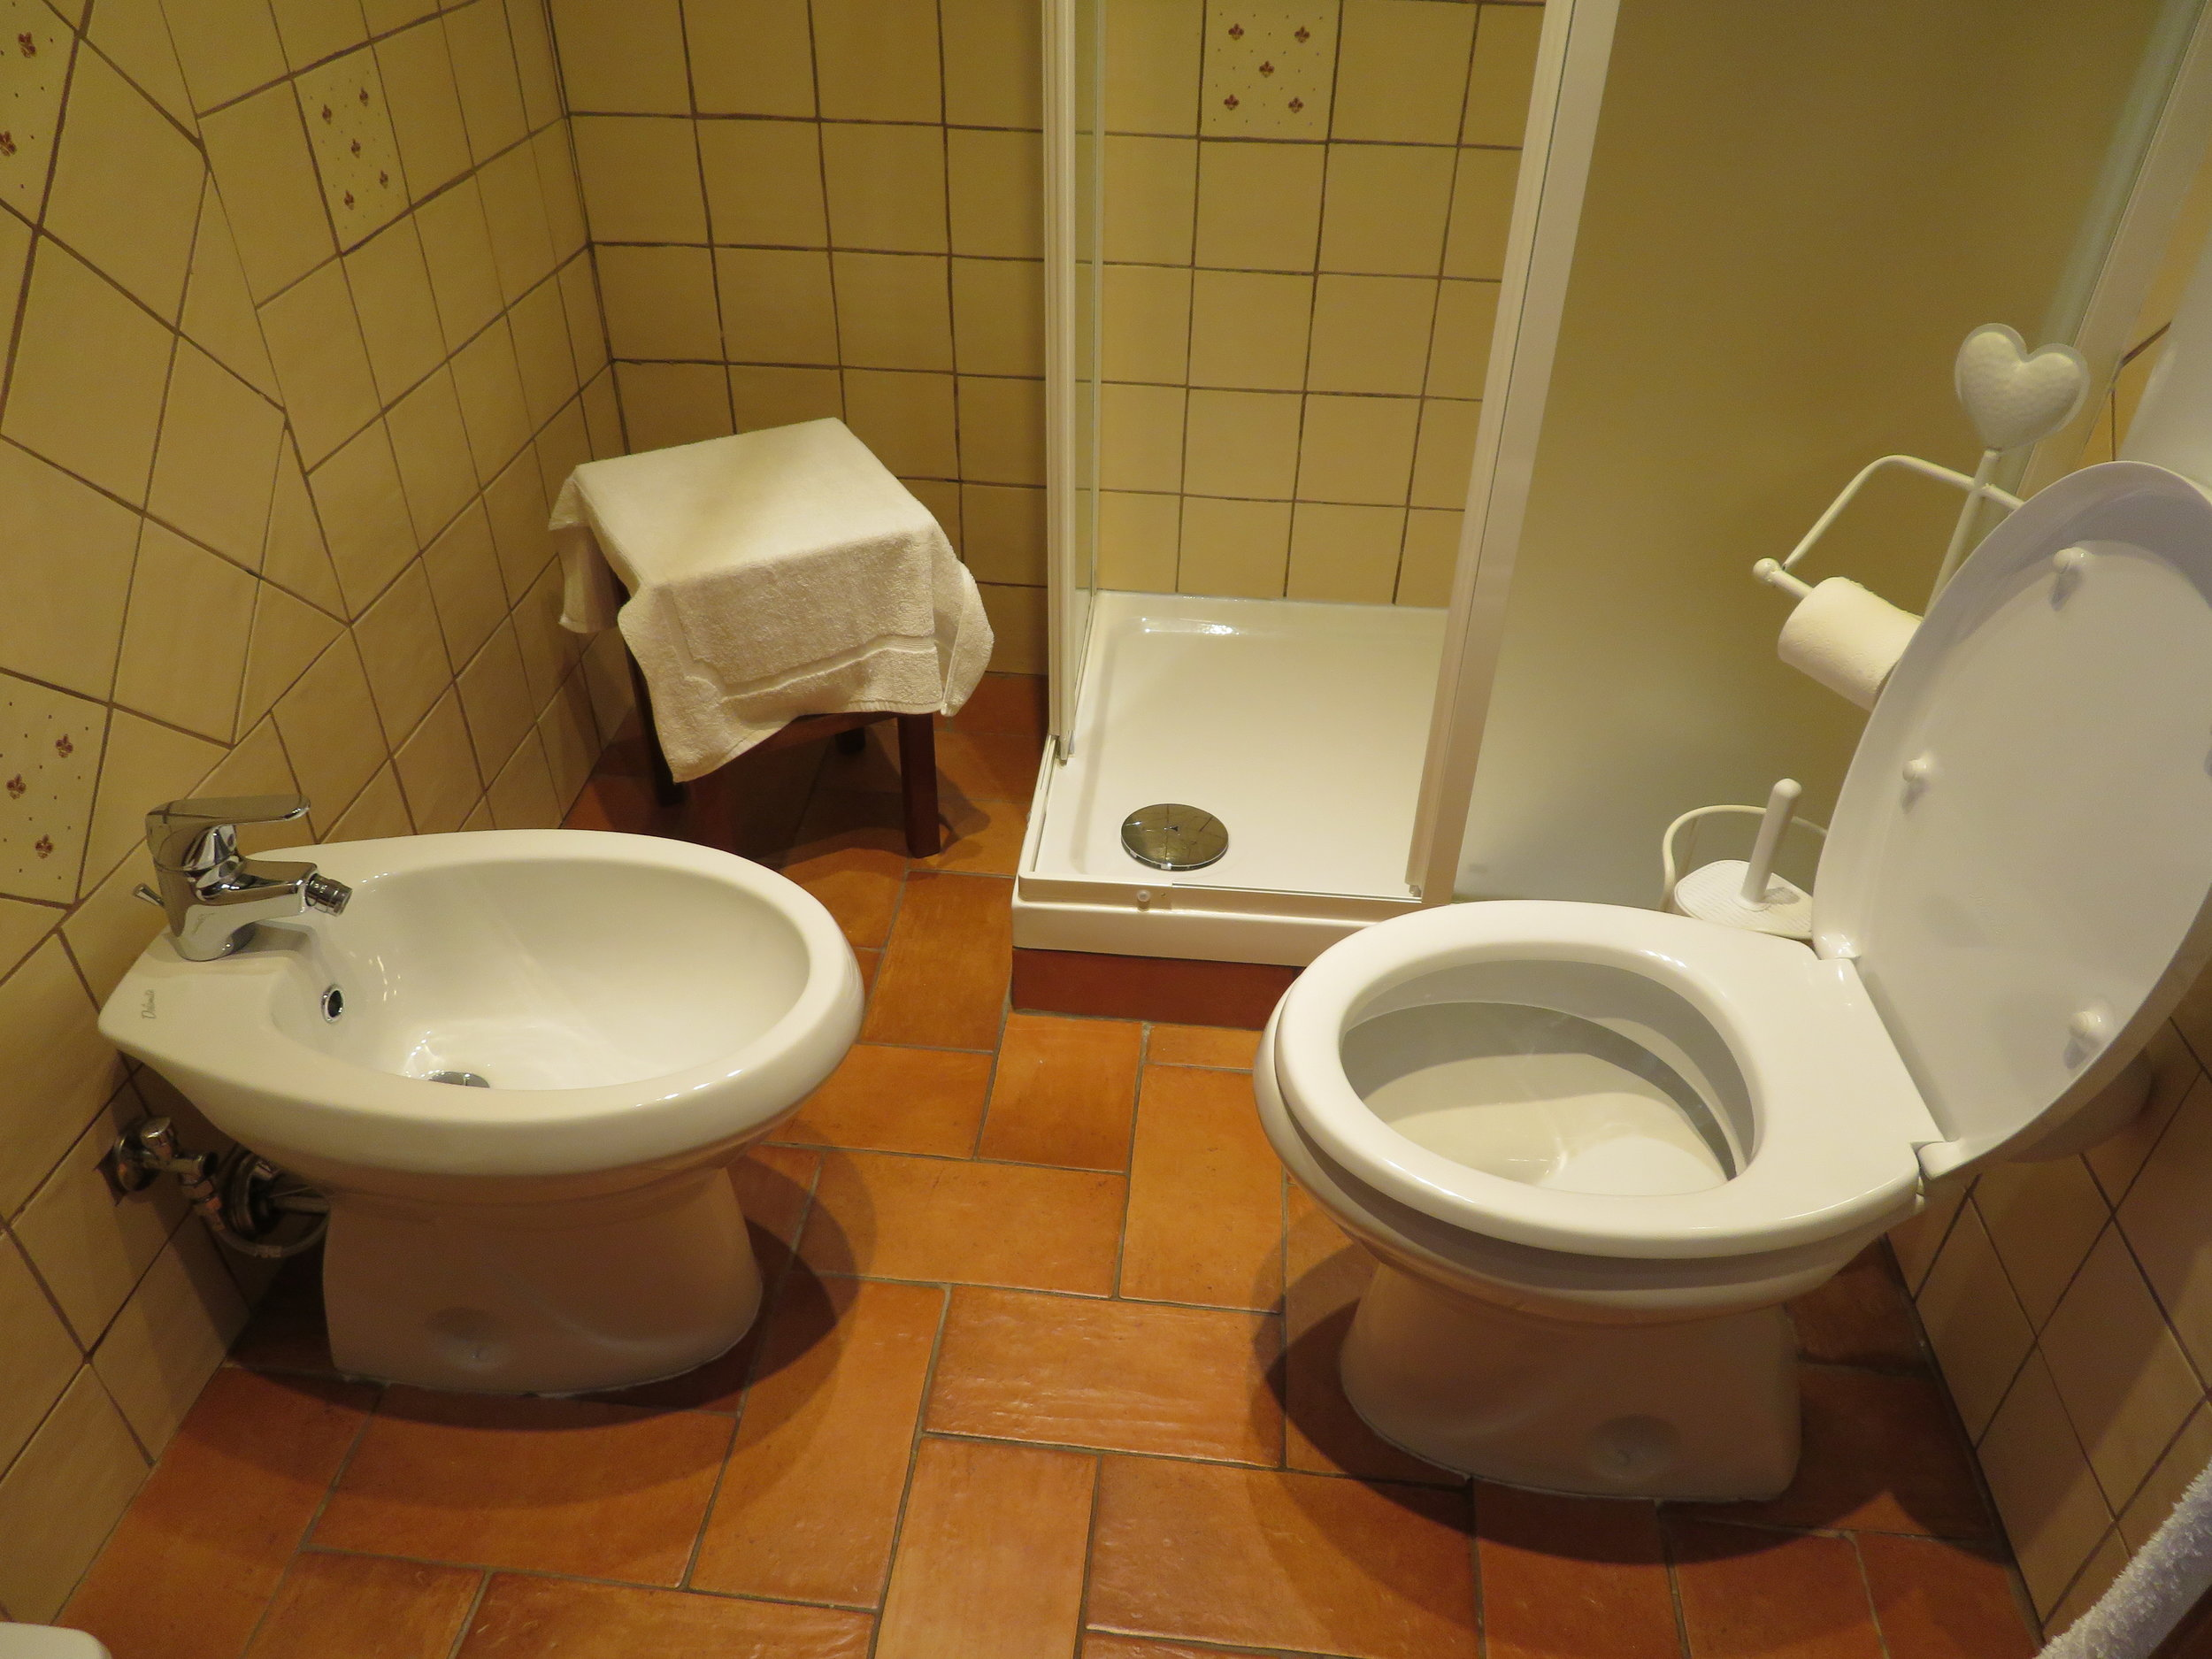 A typical Italian bath, complete with bidet